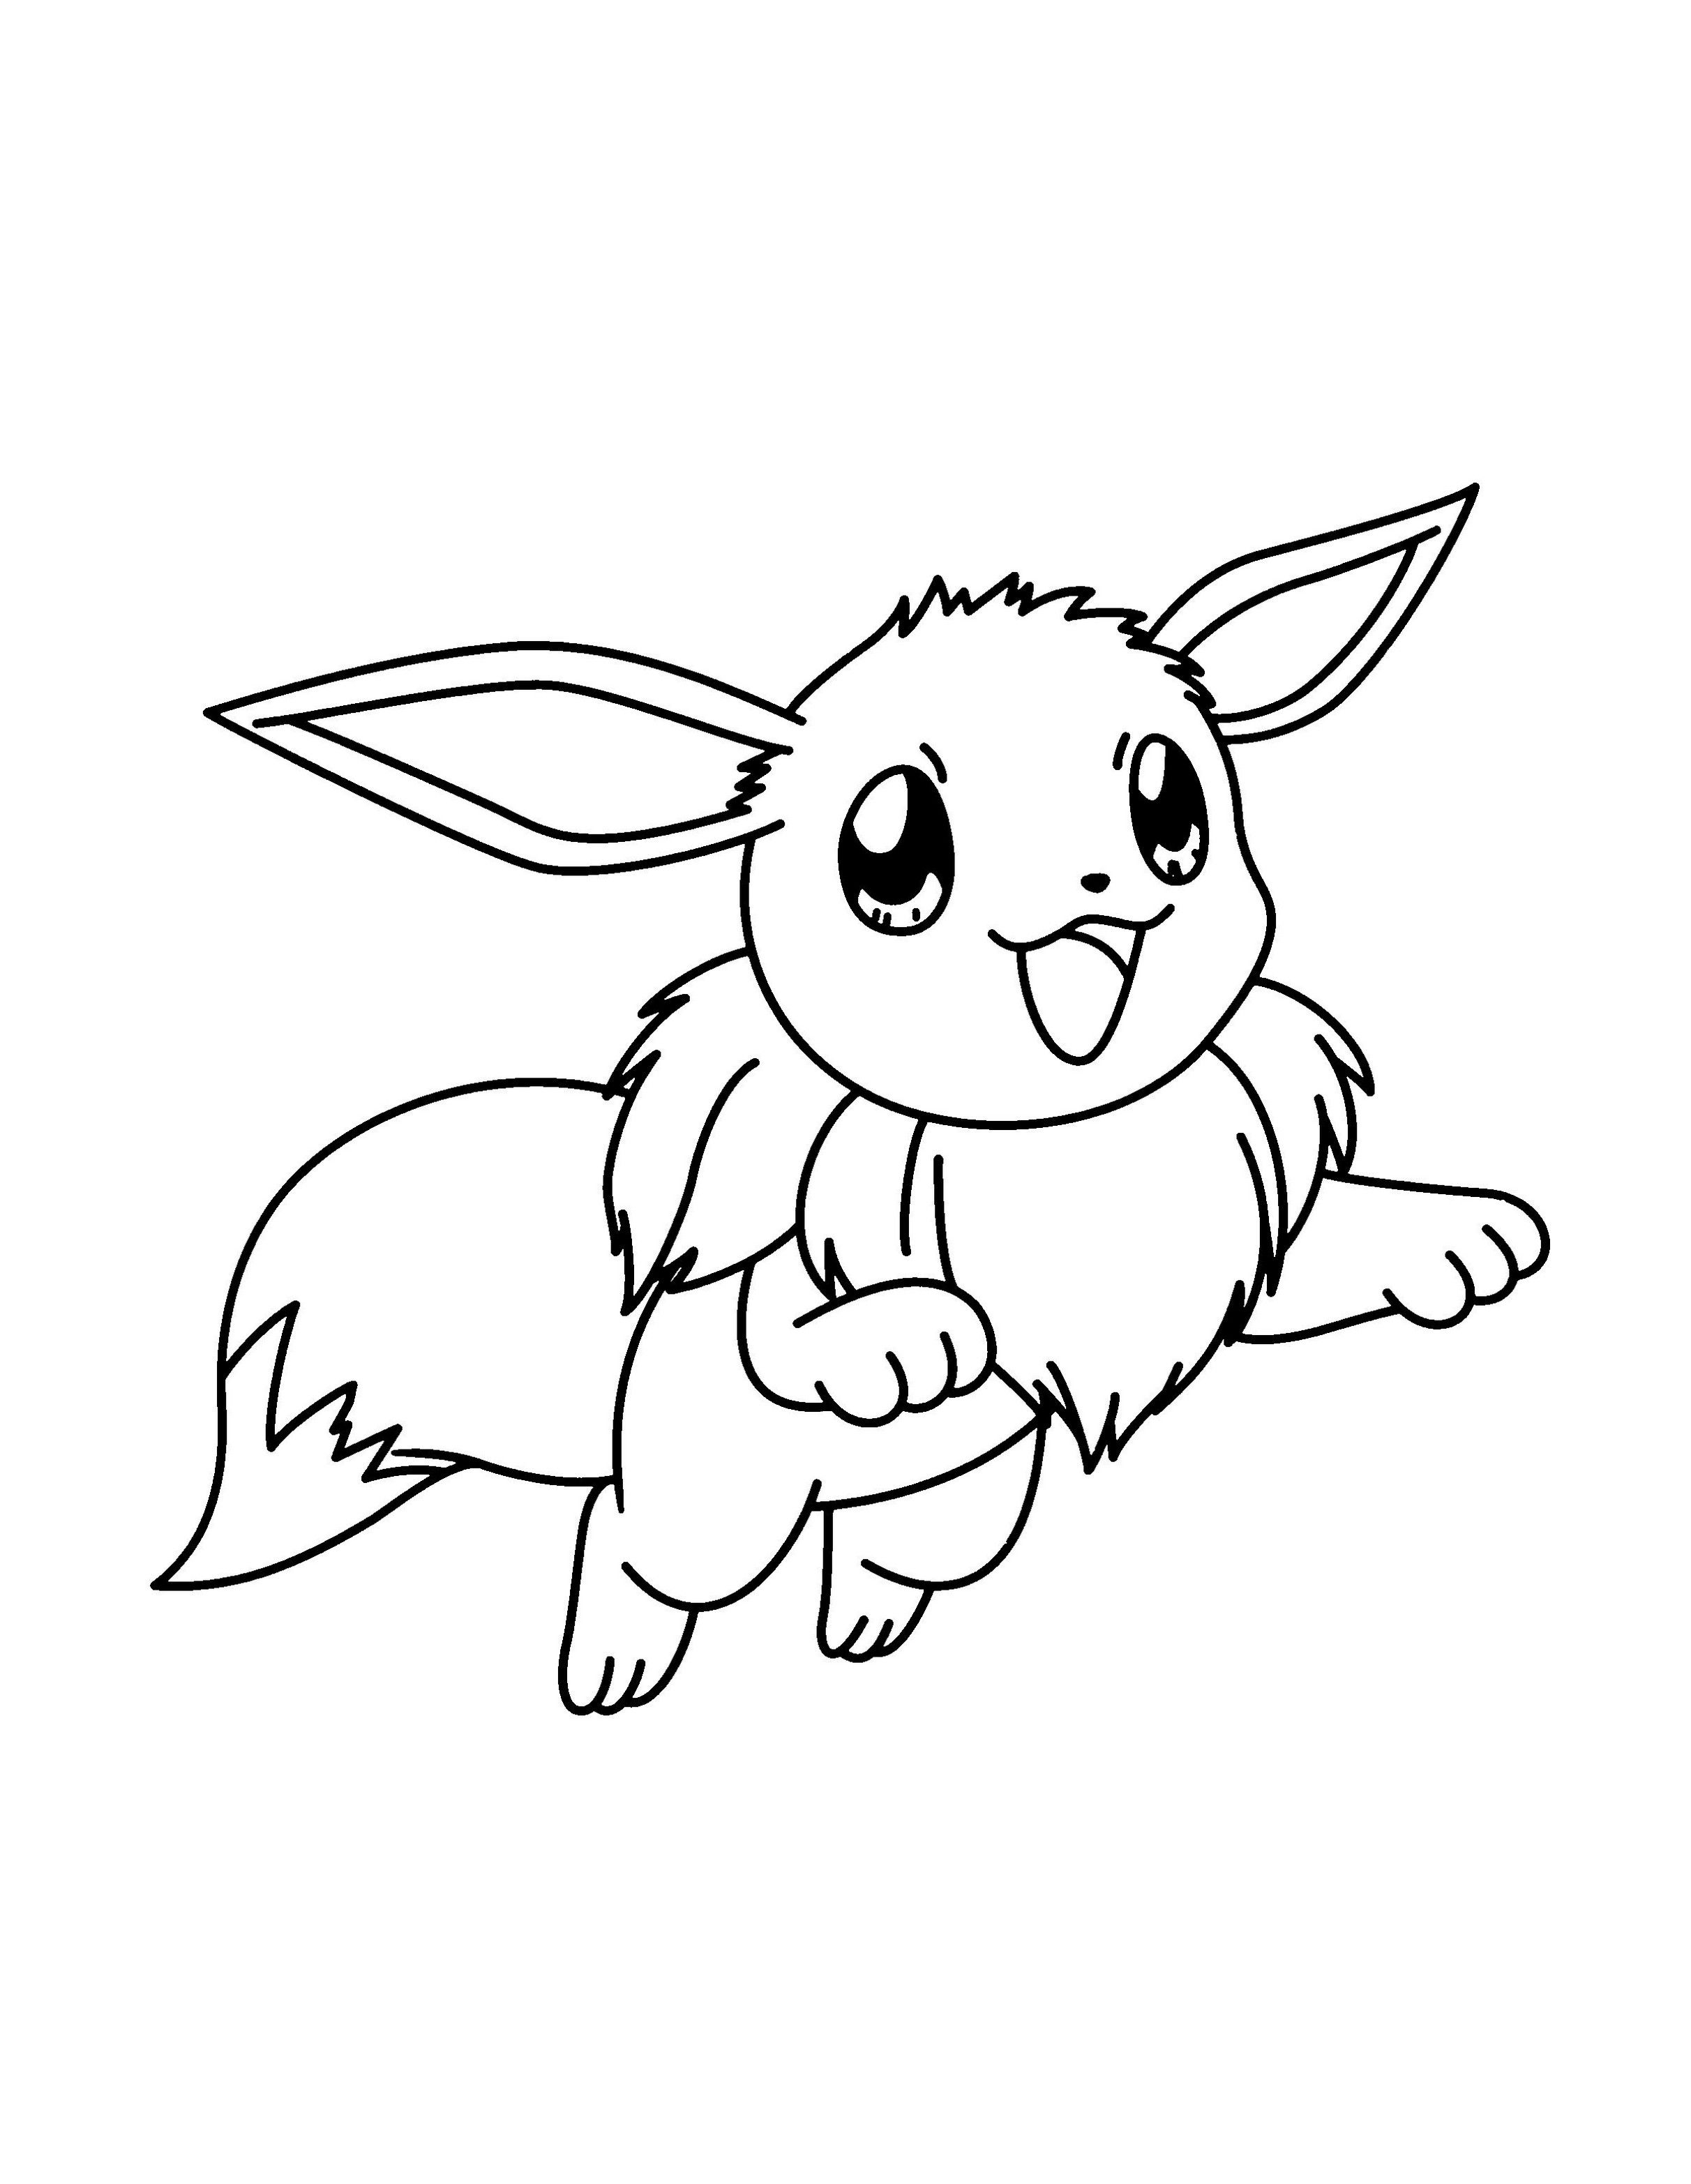 Cute Printable Eevee Pokemon Coloring Pages Pokemon Coloring Pages Pokemon Coloring Sheets Pokemon Coloring